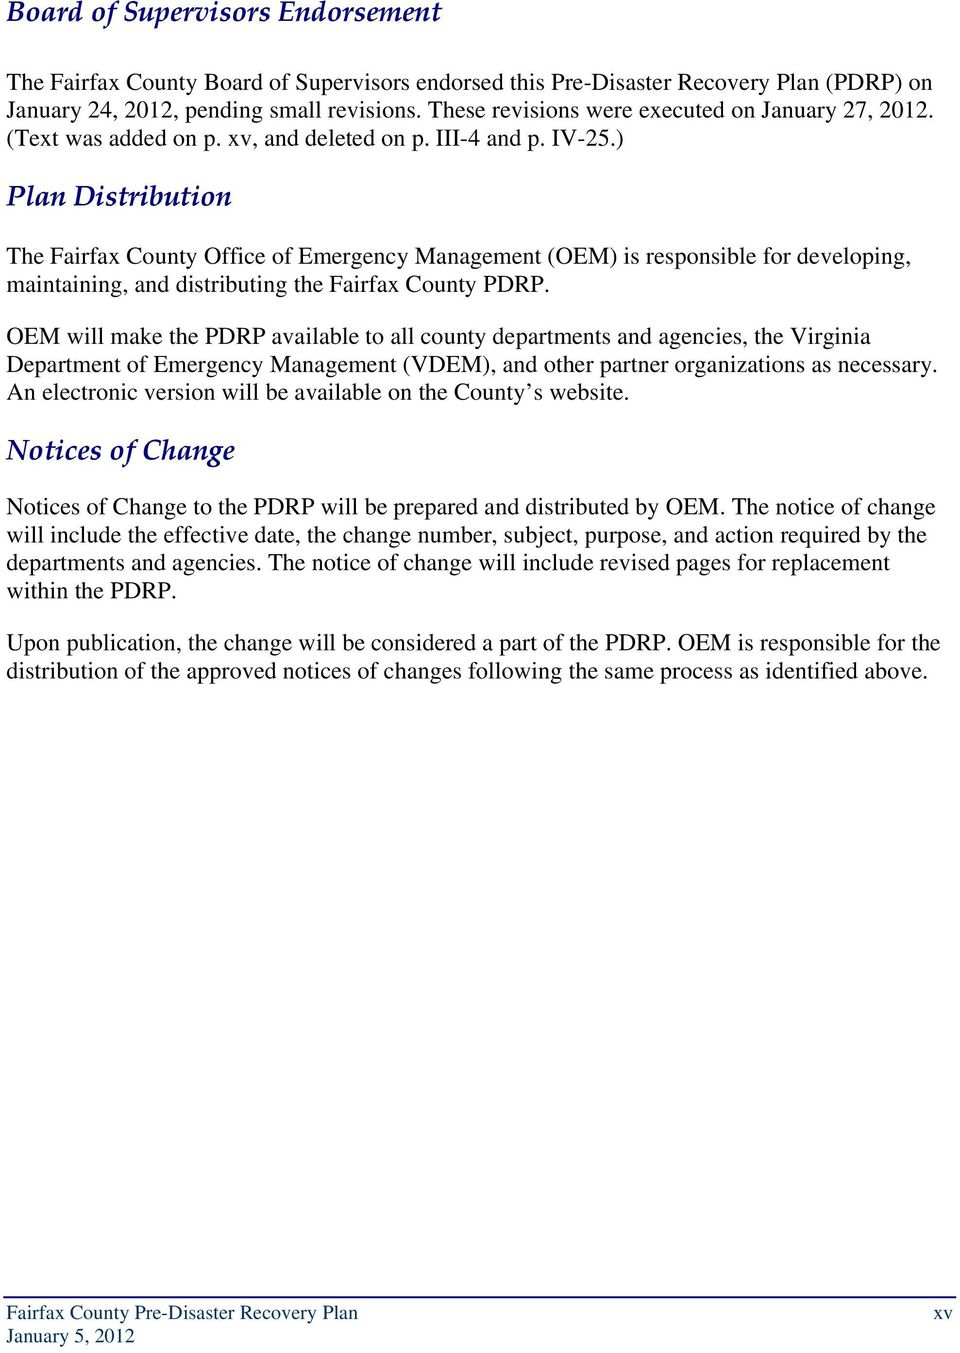 ) Plan Distribution The Fairfax County Office of Emergency Management (OEM) is responsible for developing, maintaining, and distributing the Fairfax County PDRP.